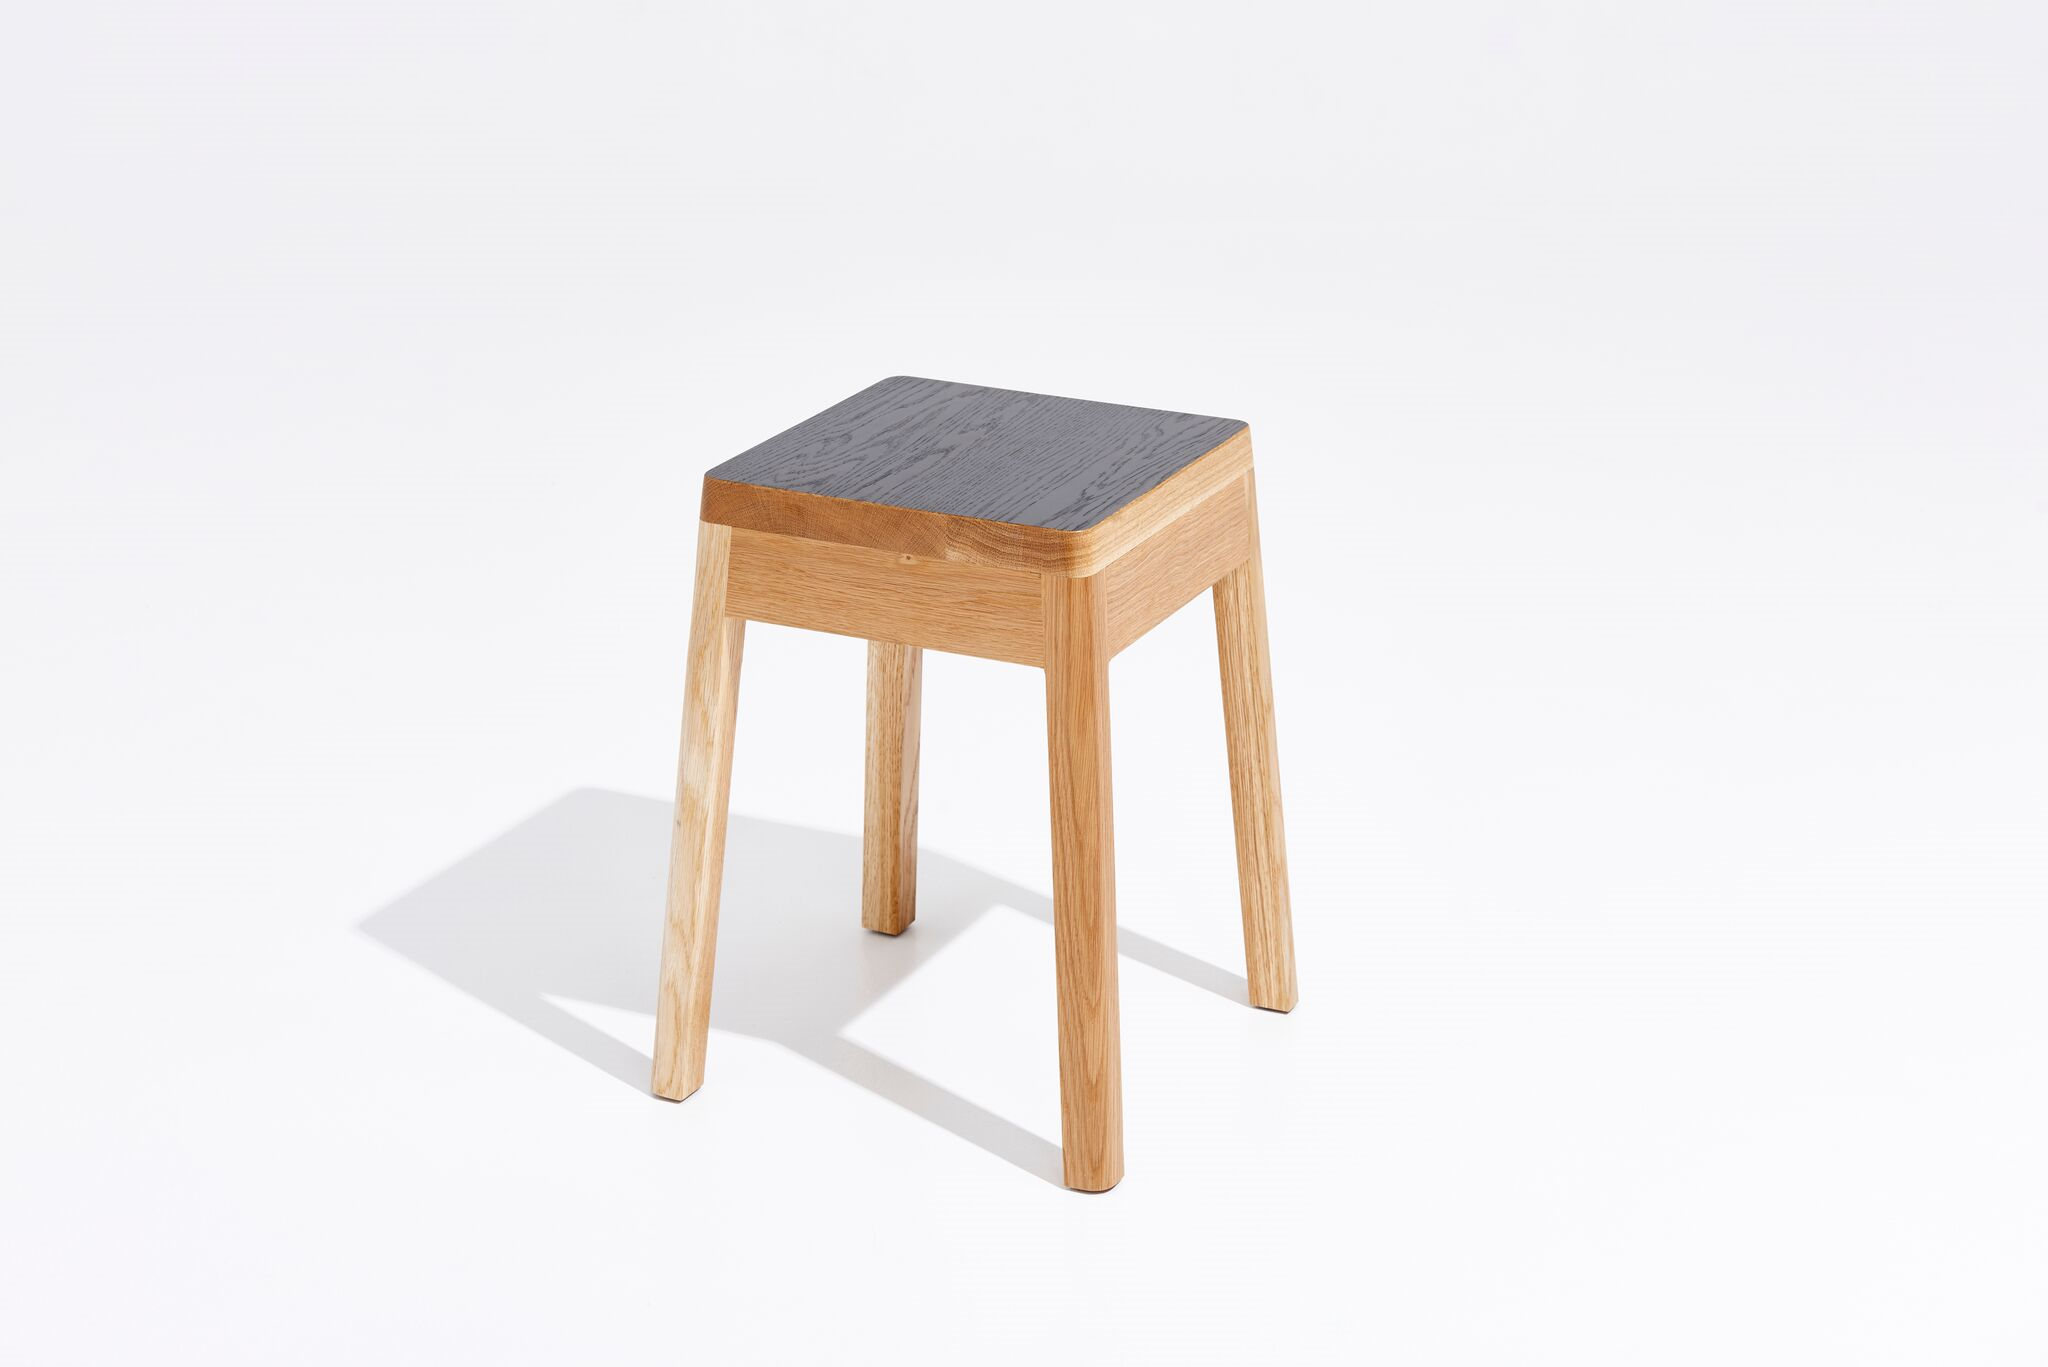 Stools, benches and seats